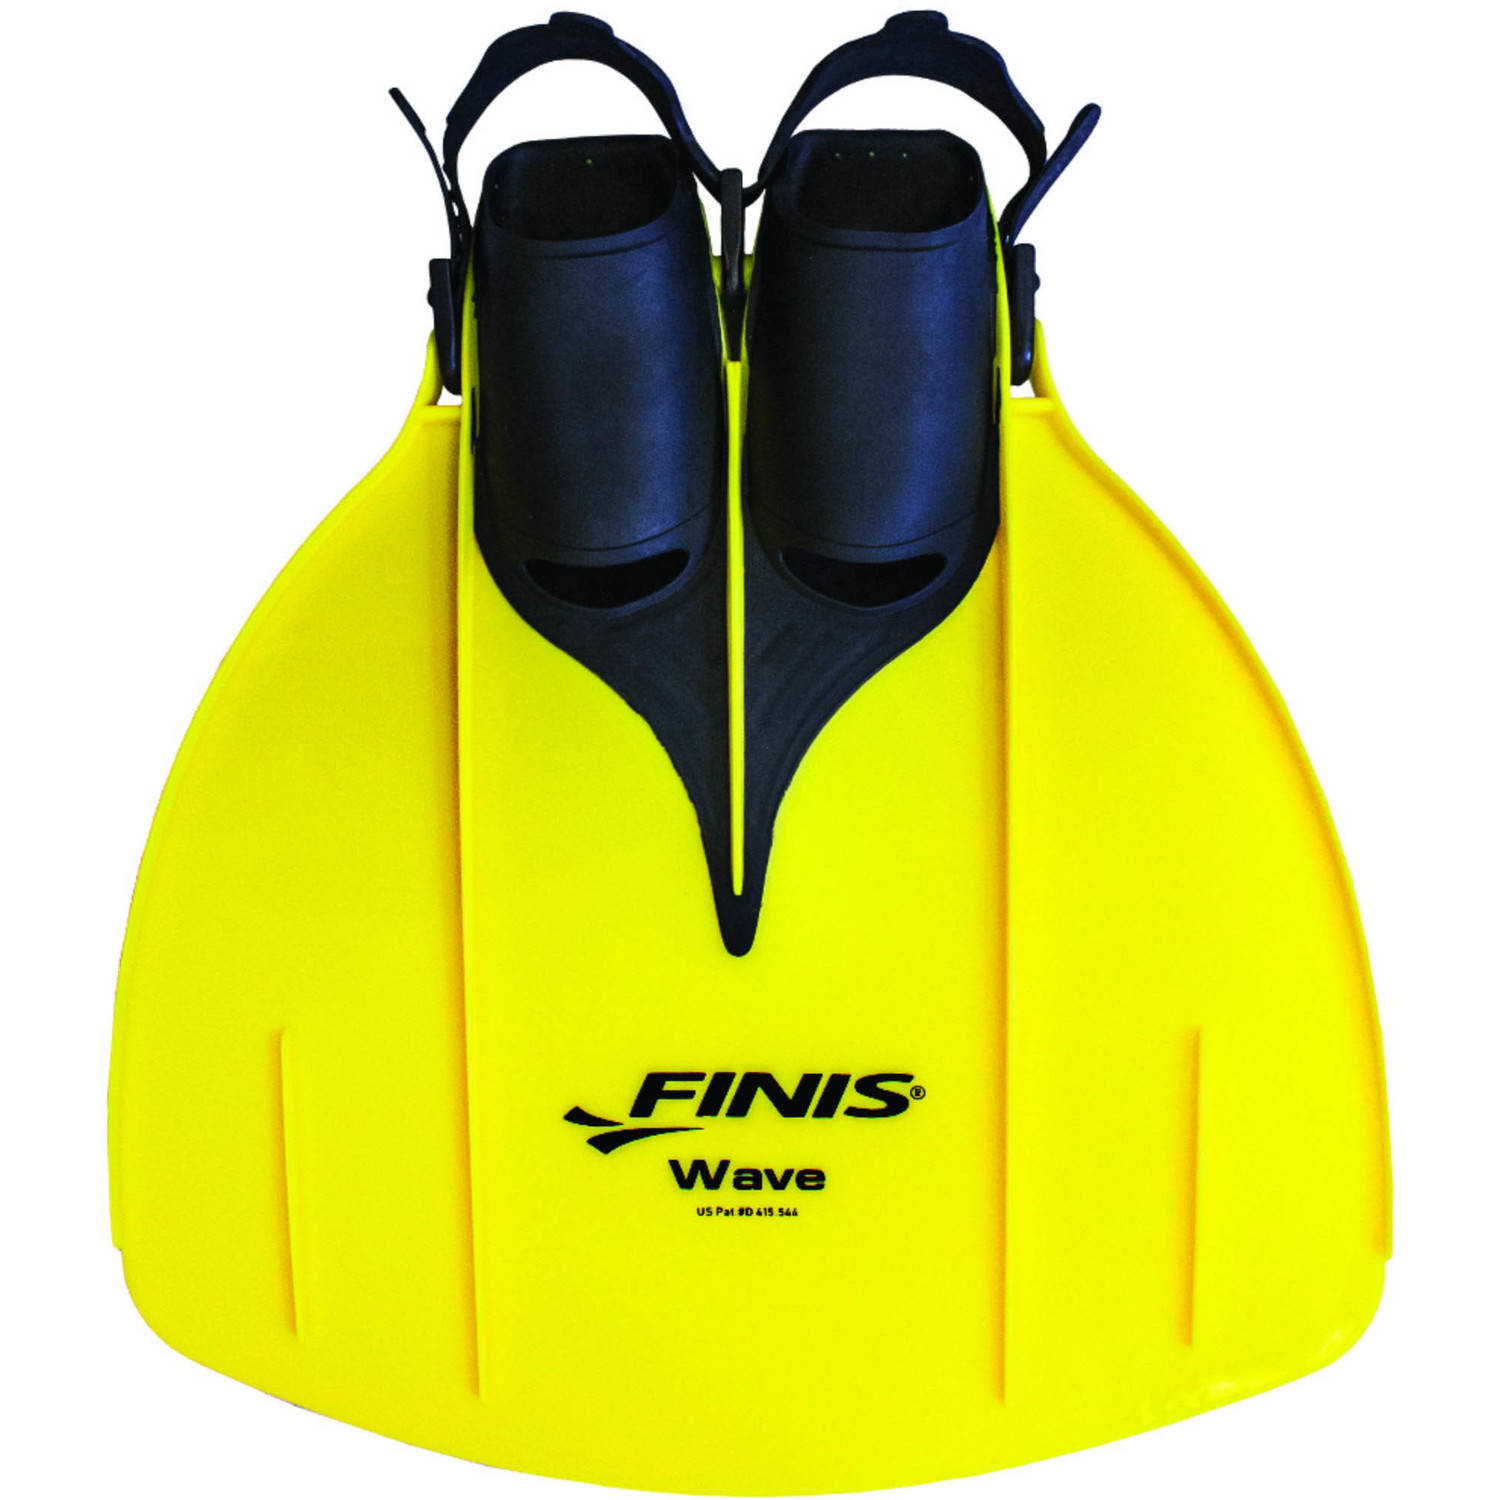 FINIS Wave Monofin Youth Swim Fin Yellow